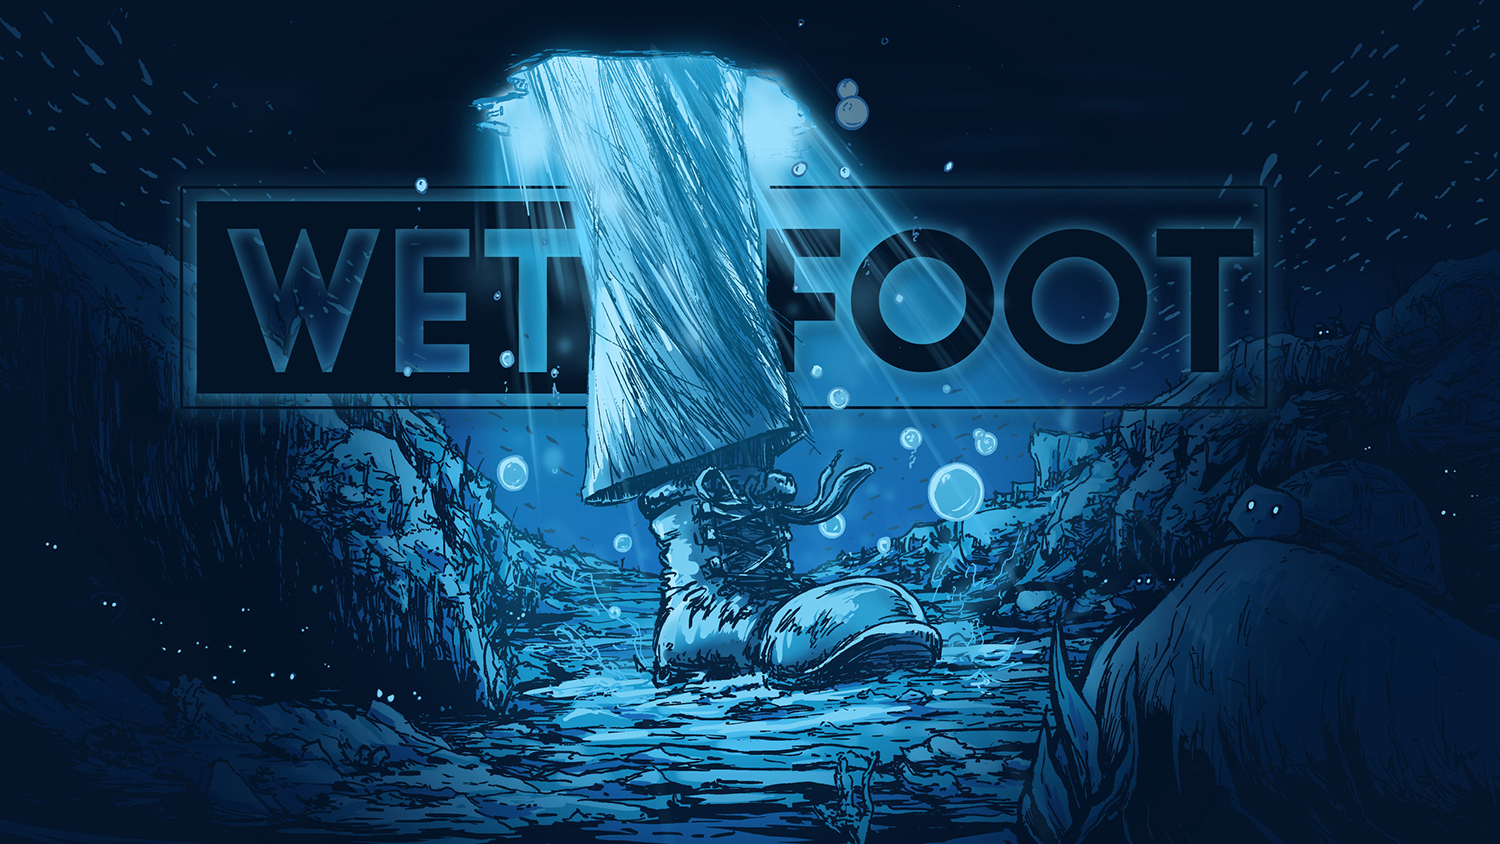 "Worked with comedian K urt Braunohler  to produce his companies Title Card Slate. He asked for a boot stepping in a puddle, I suggested having it submerged in water, Kurt added the idea of an underwater world, so I went for what I call ""Little Mermaid for a Boot""."